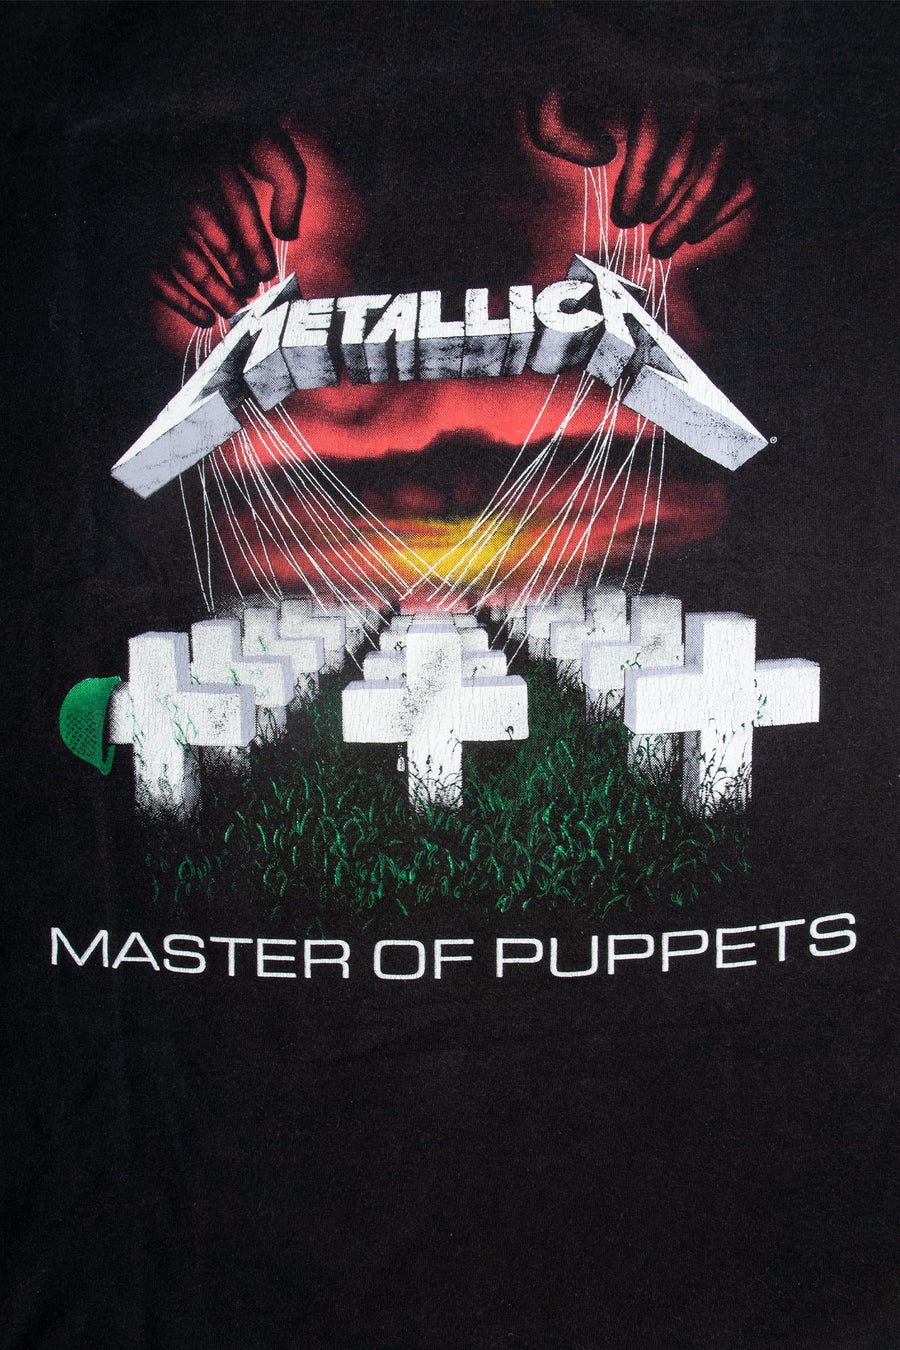 Tee Metallica master of puppets - WASTED PARIS